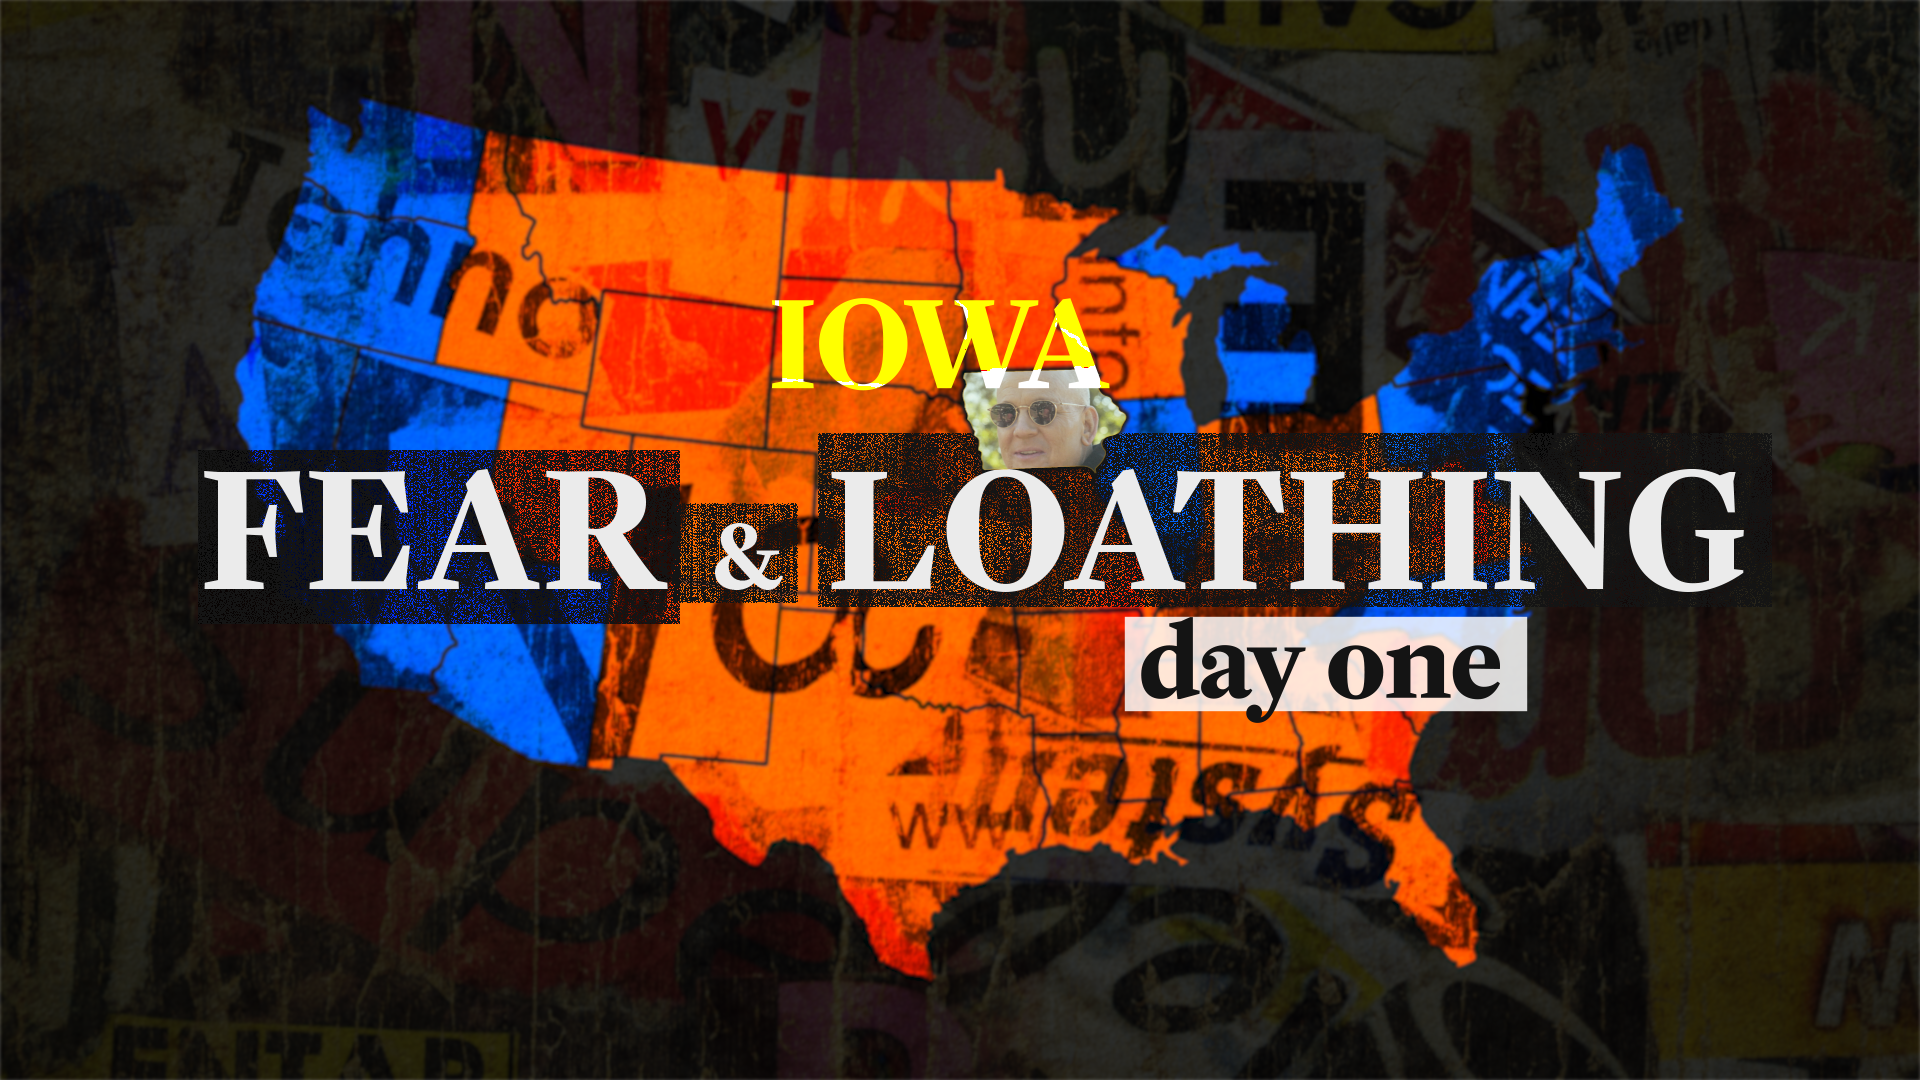 Day 1: All Eyes on Iowa's Final Poll